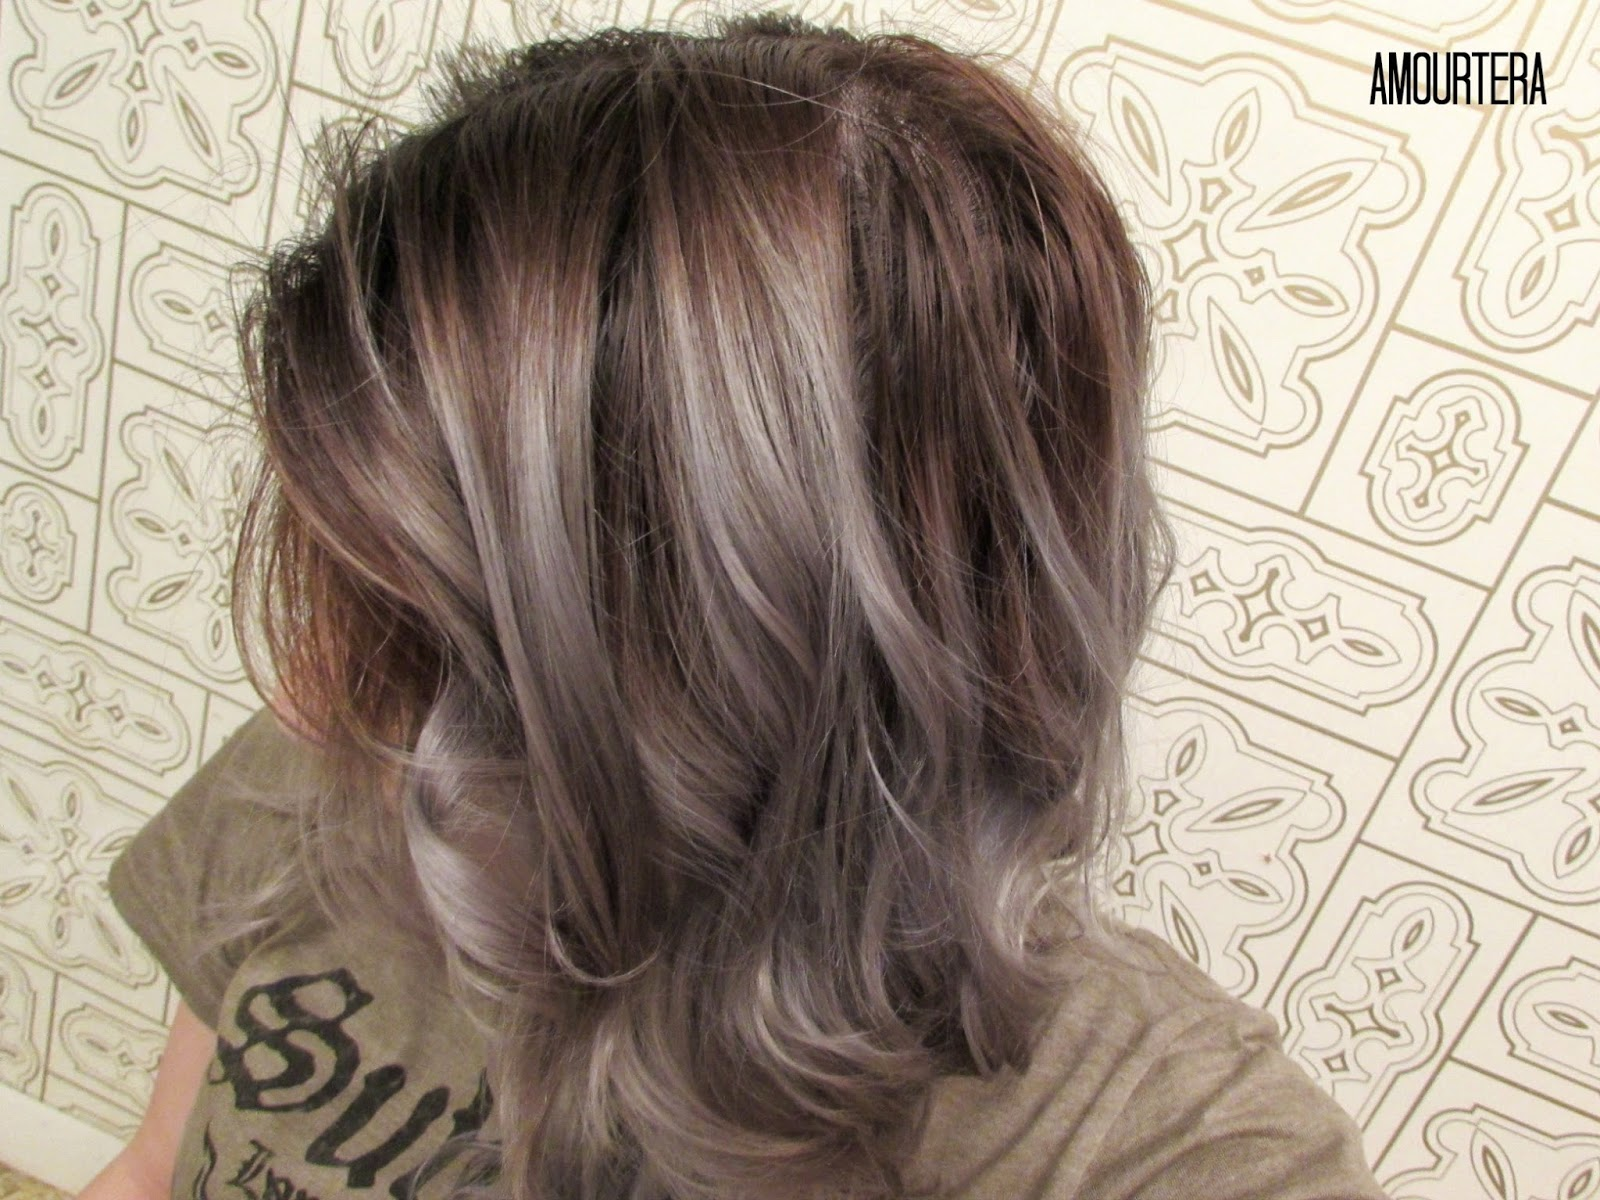 How To Get Silver Gray Hair At Home Amourtera